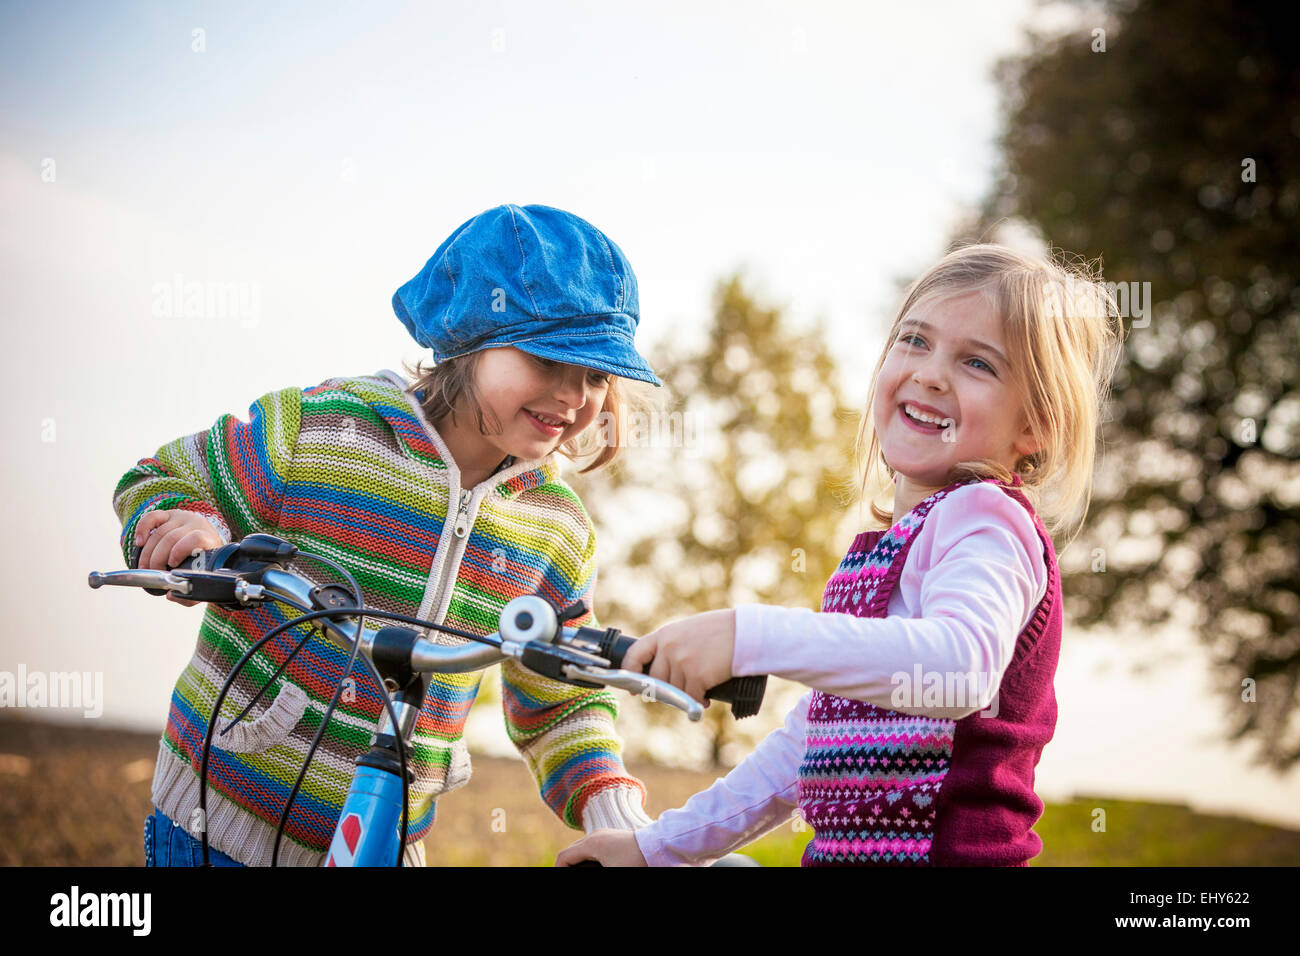 Two girls playing with bicycle - Stock Image